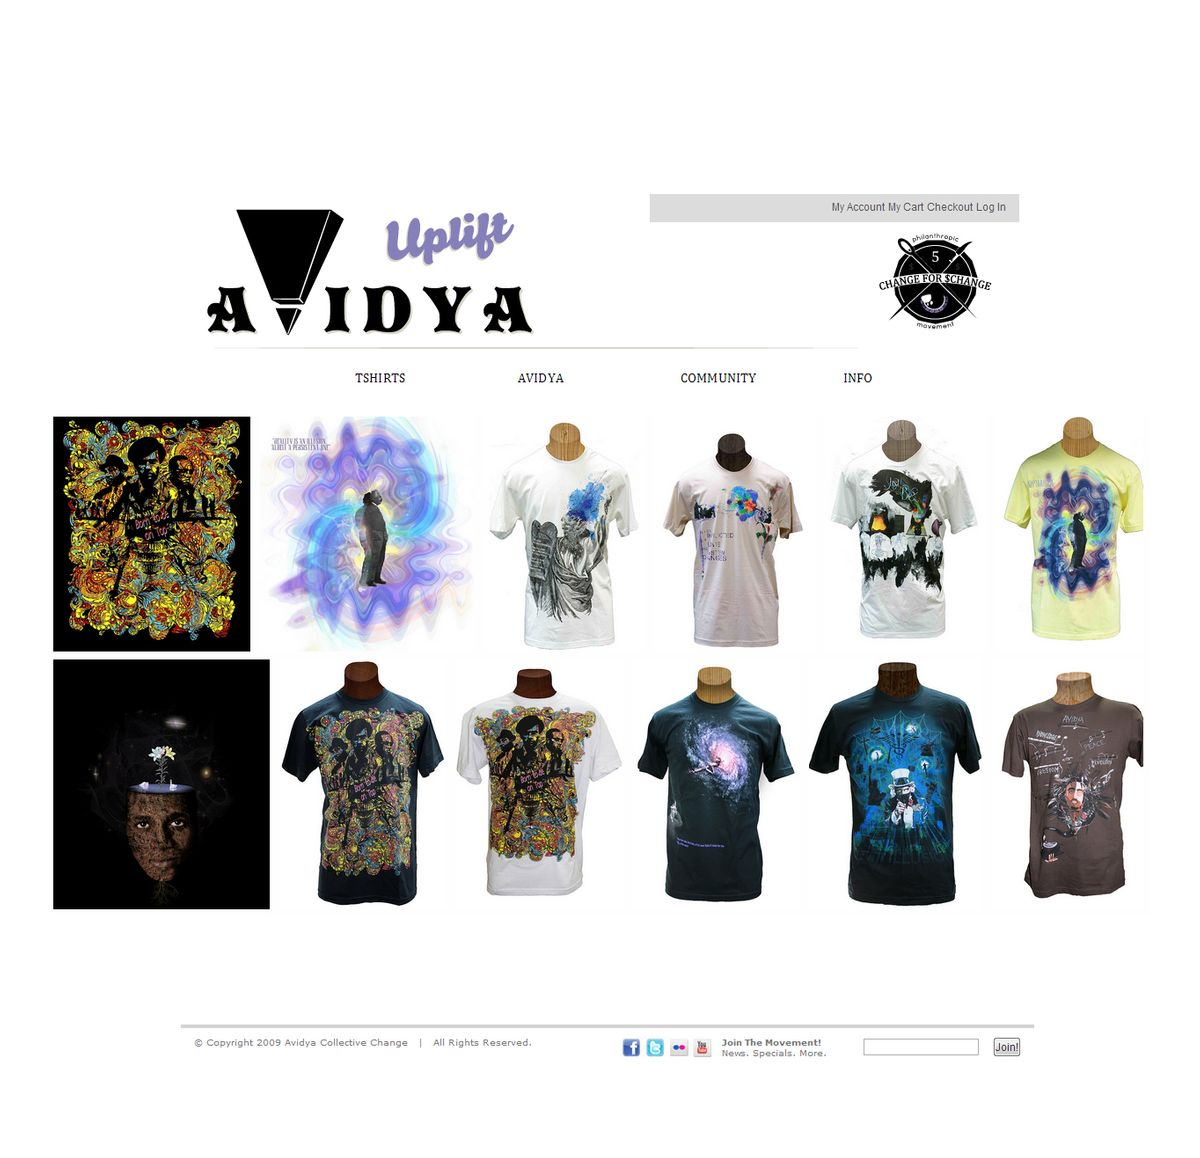 Avidya-Collective-Change-Web.jpg